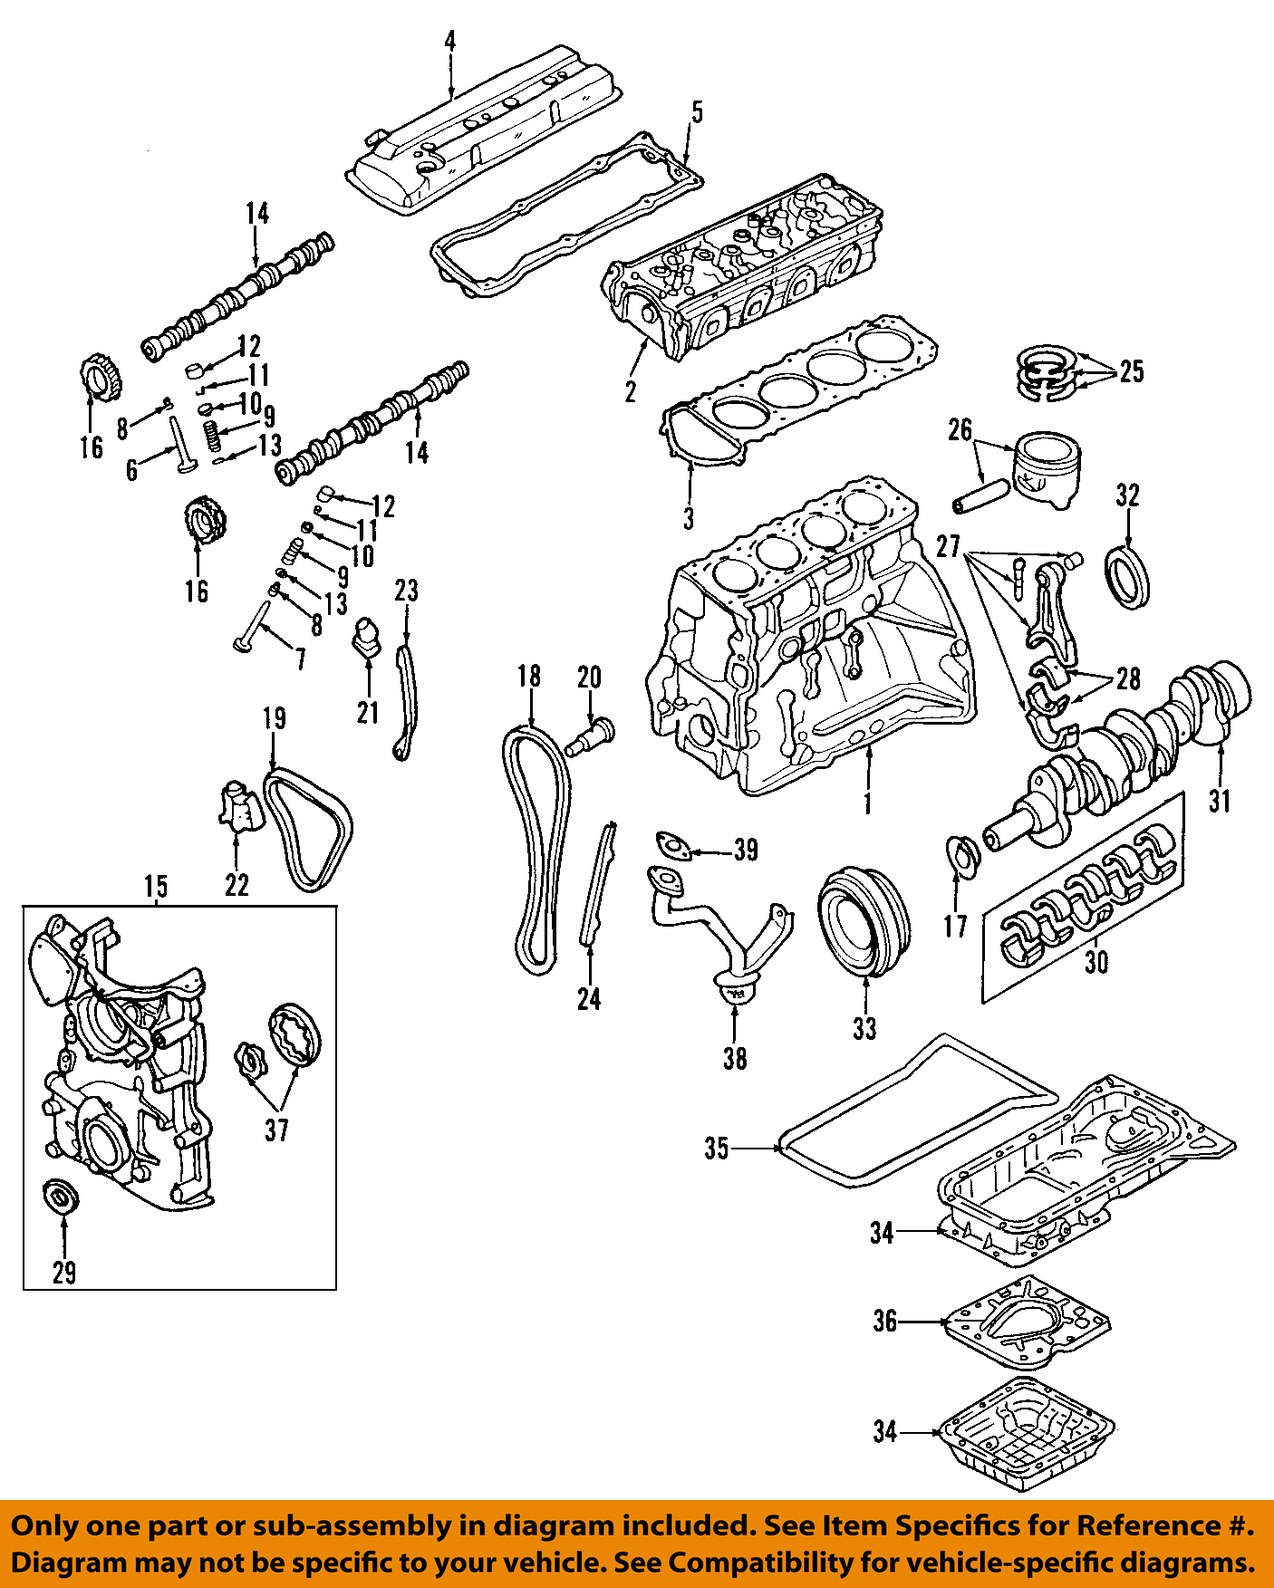 2006 Nissan Altima 2 5 Engine Diagram Wiring Diagrams 5l Auto 1996